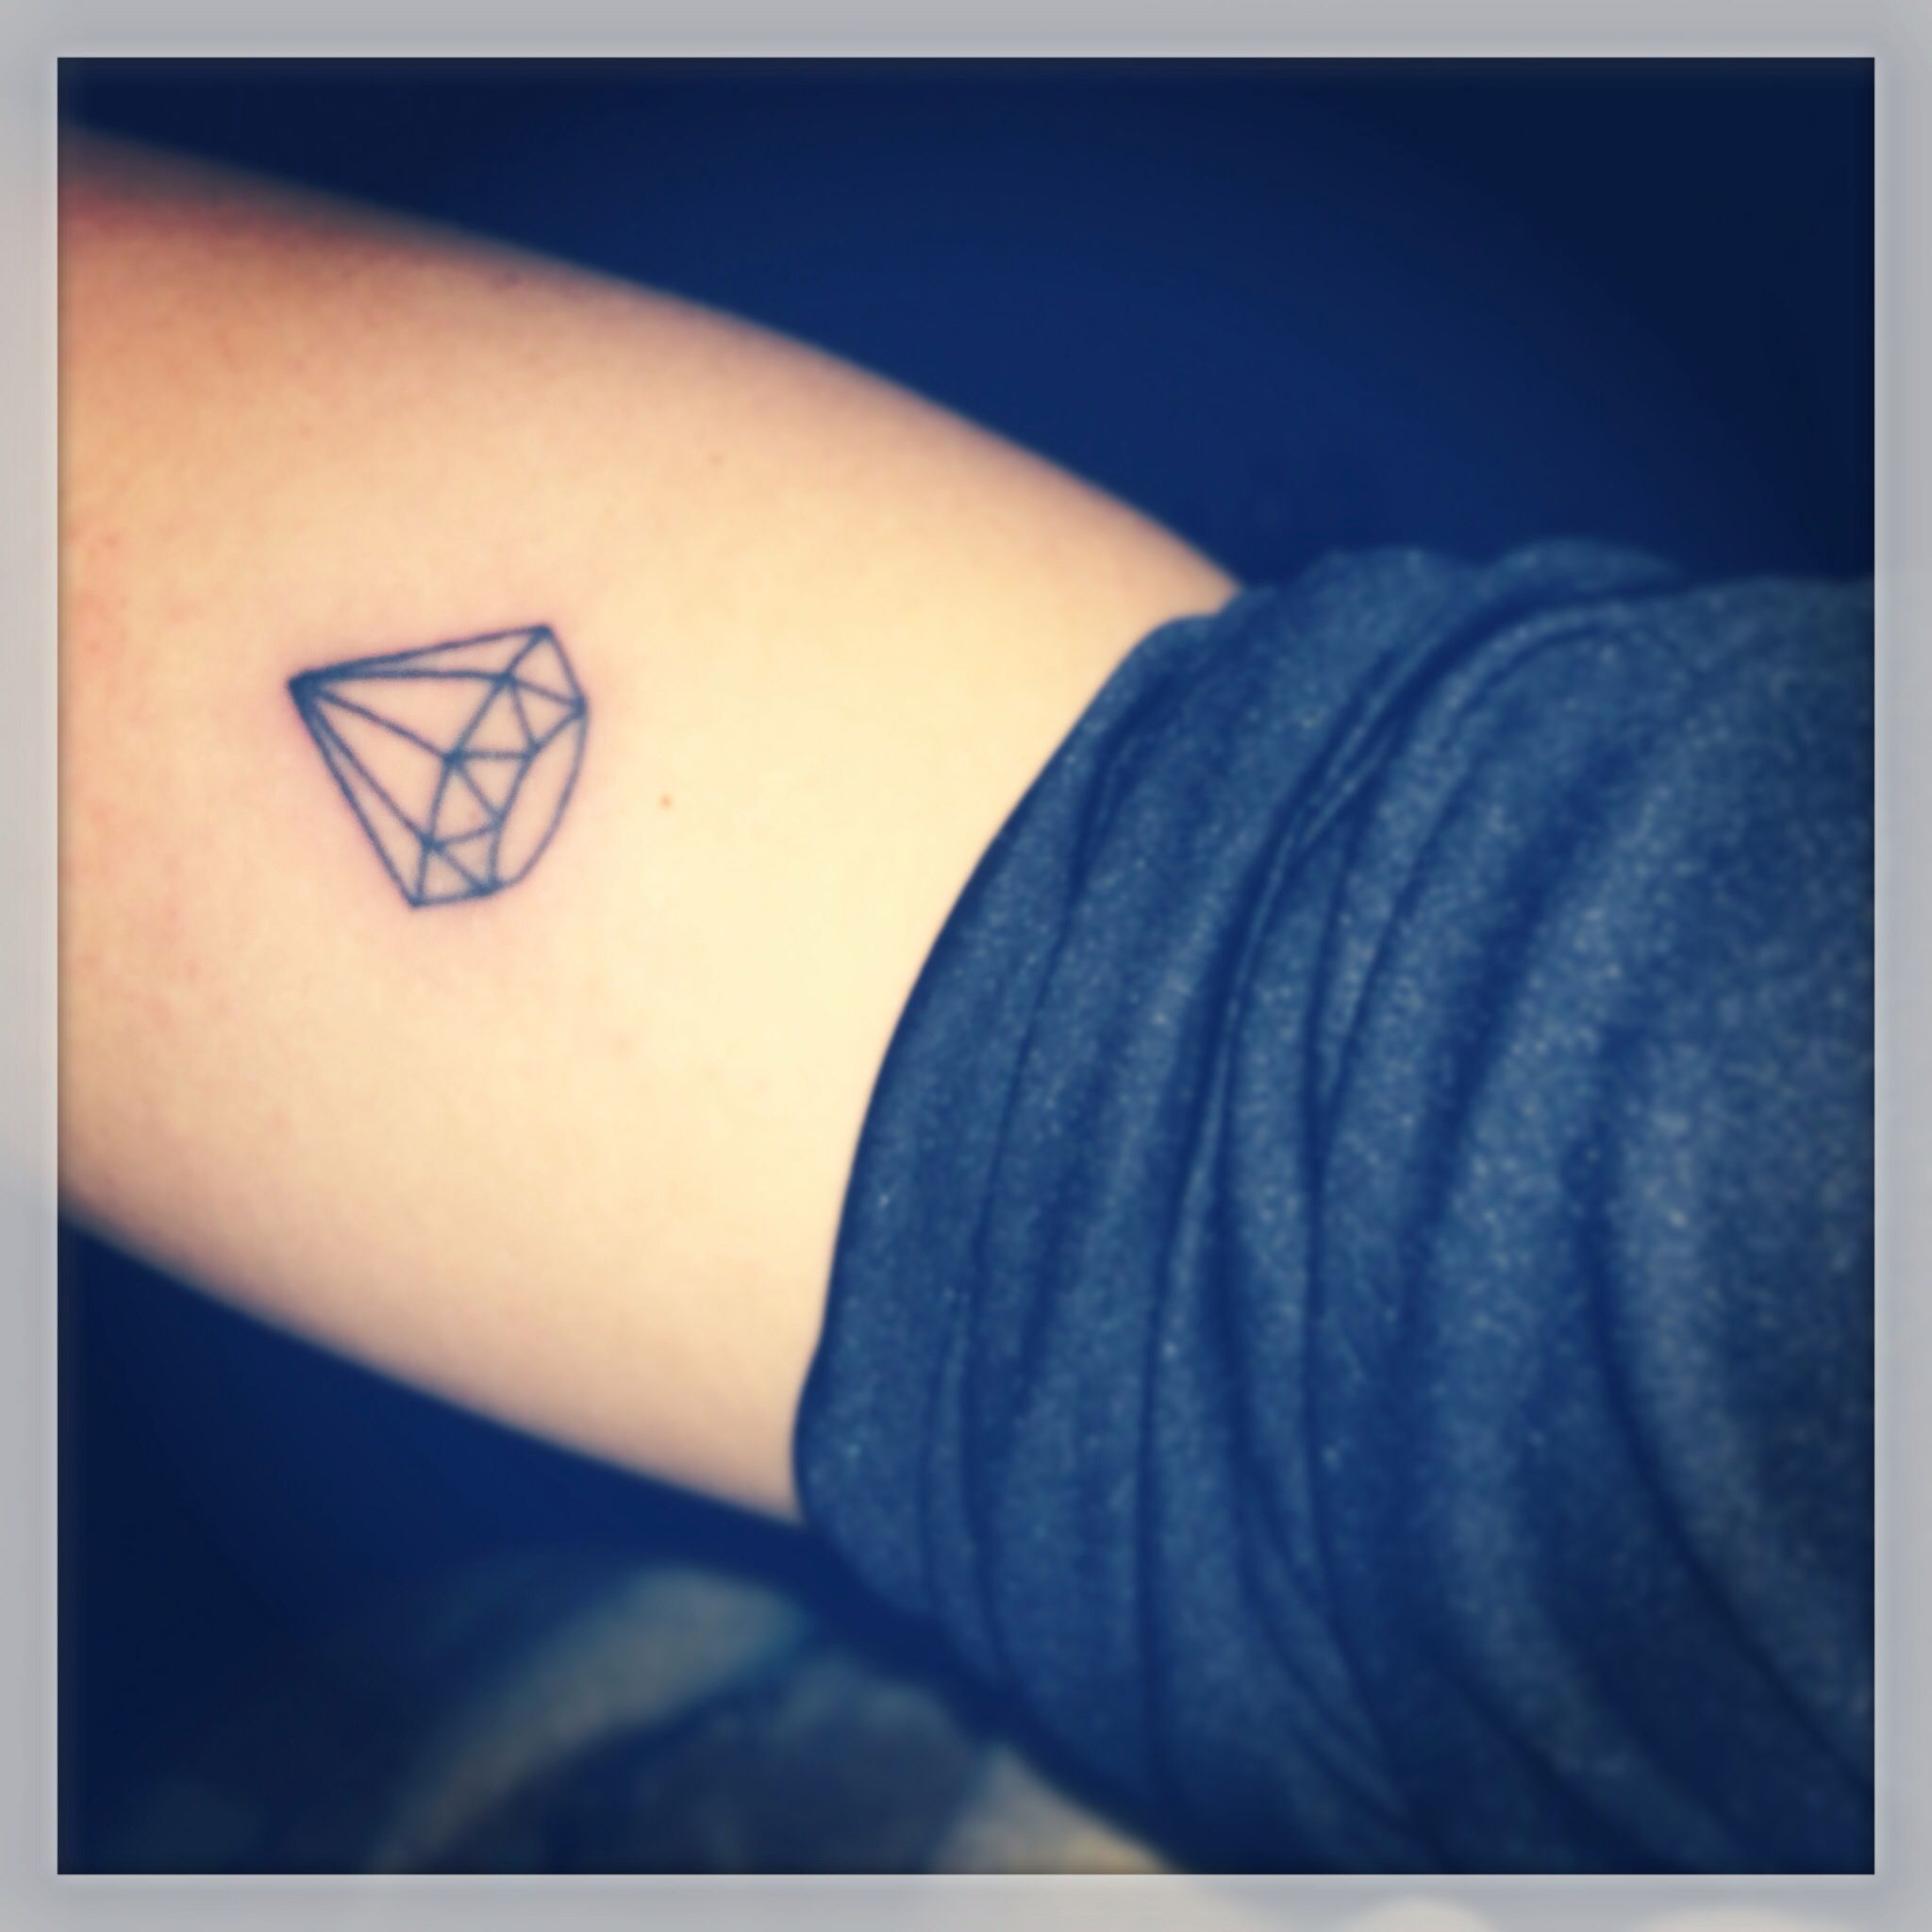 Cool tattoo ideas for brothers diamond tattoo outline ium thinking of getting this in honor of my